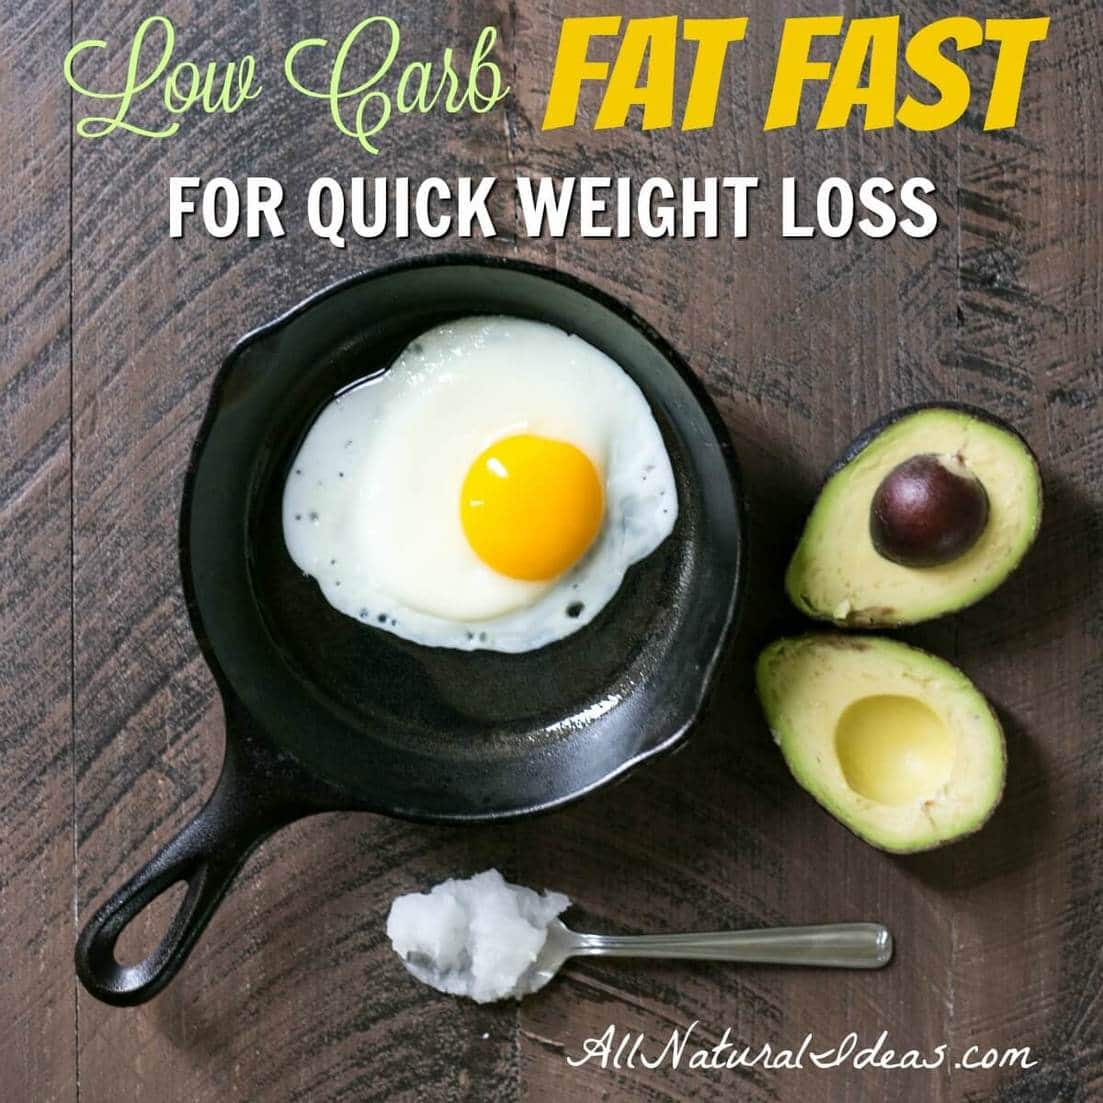 Fat Fast Diet Menu for Quick Weight Loss